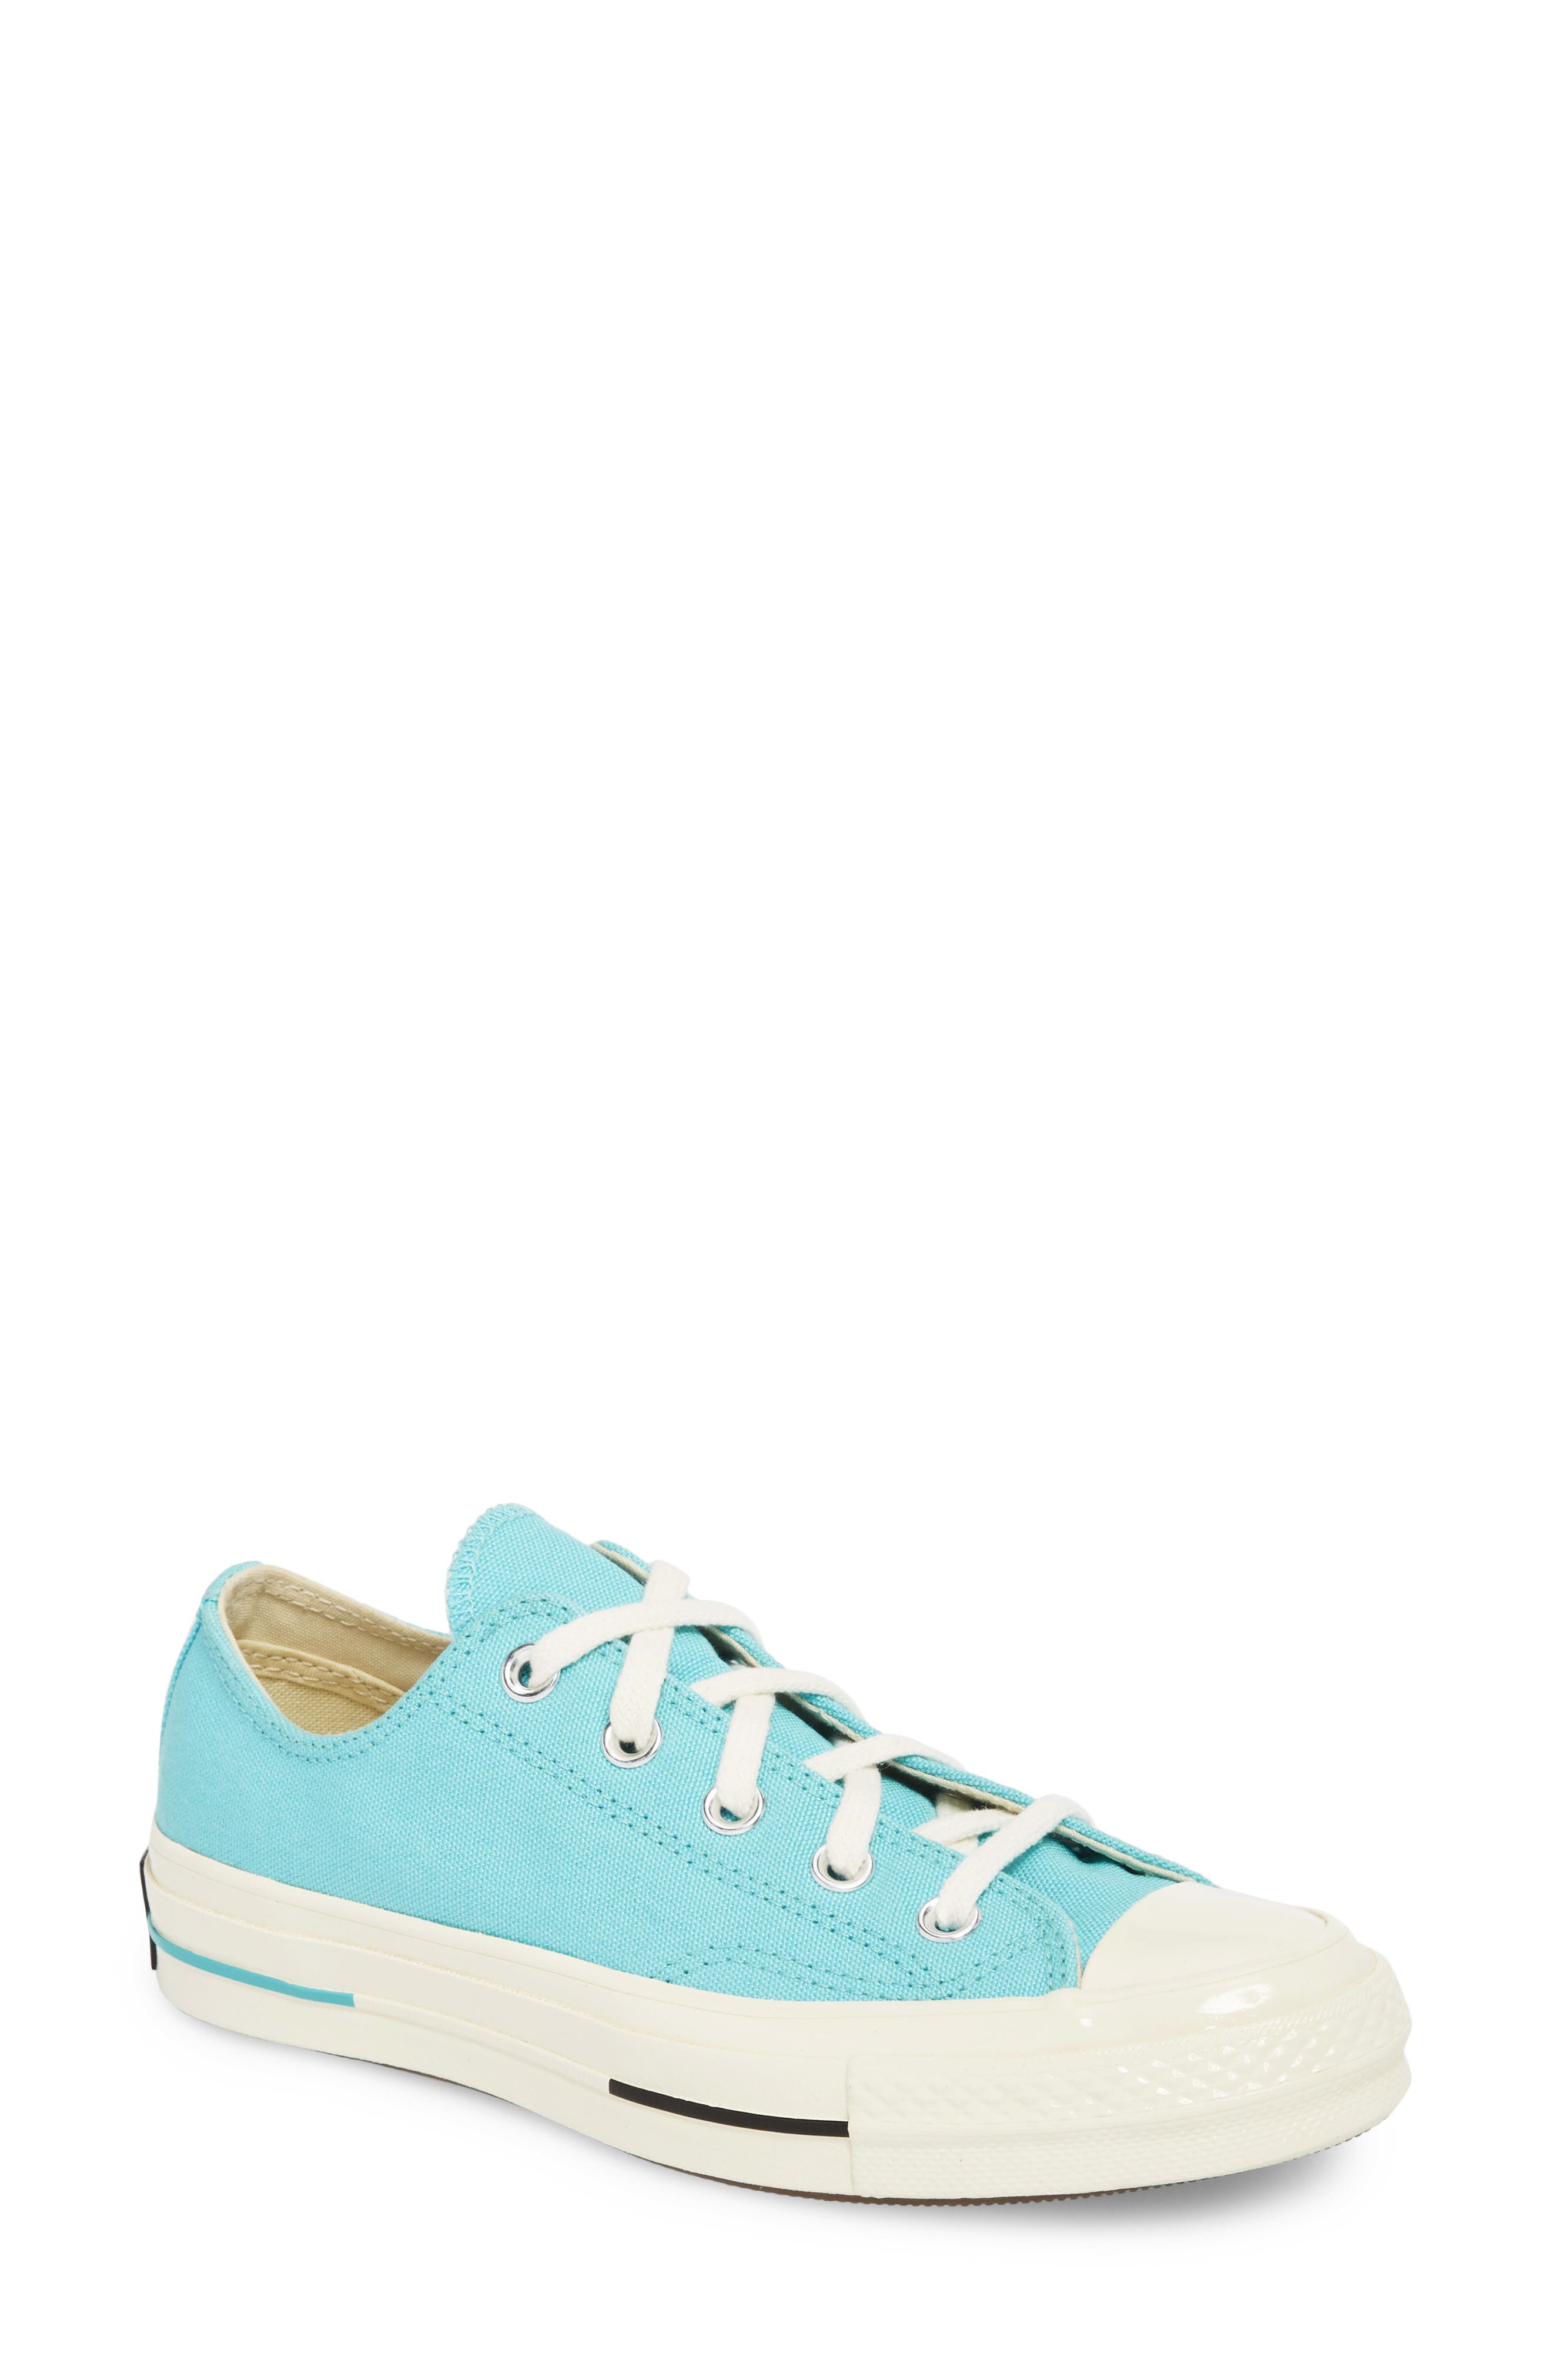 Chuck Taylor<sup>®</sup> All Star<sup>®</sup> '70s Brights Low Top Sneaker,                         Main,                         color, Bleached Aqua